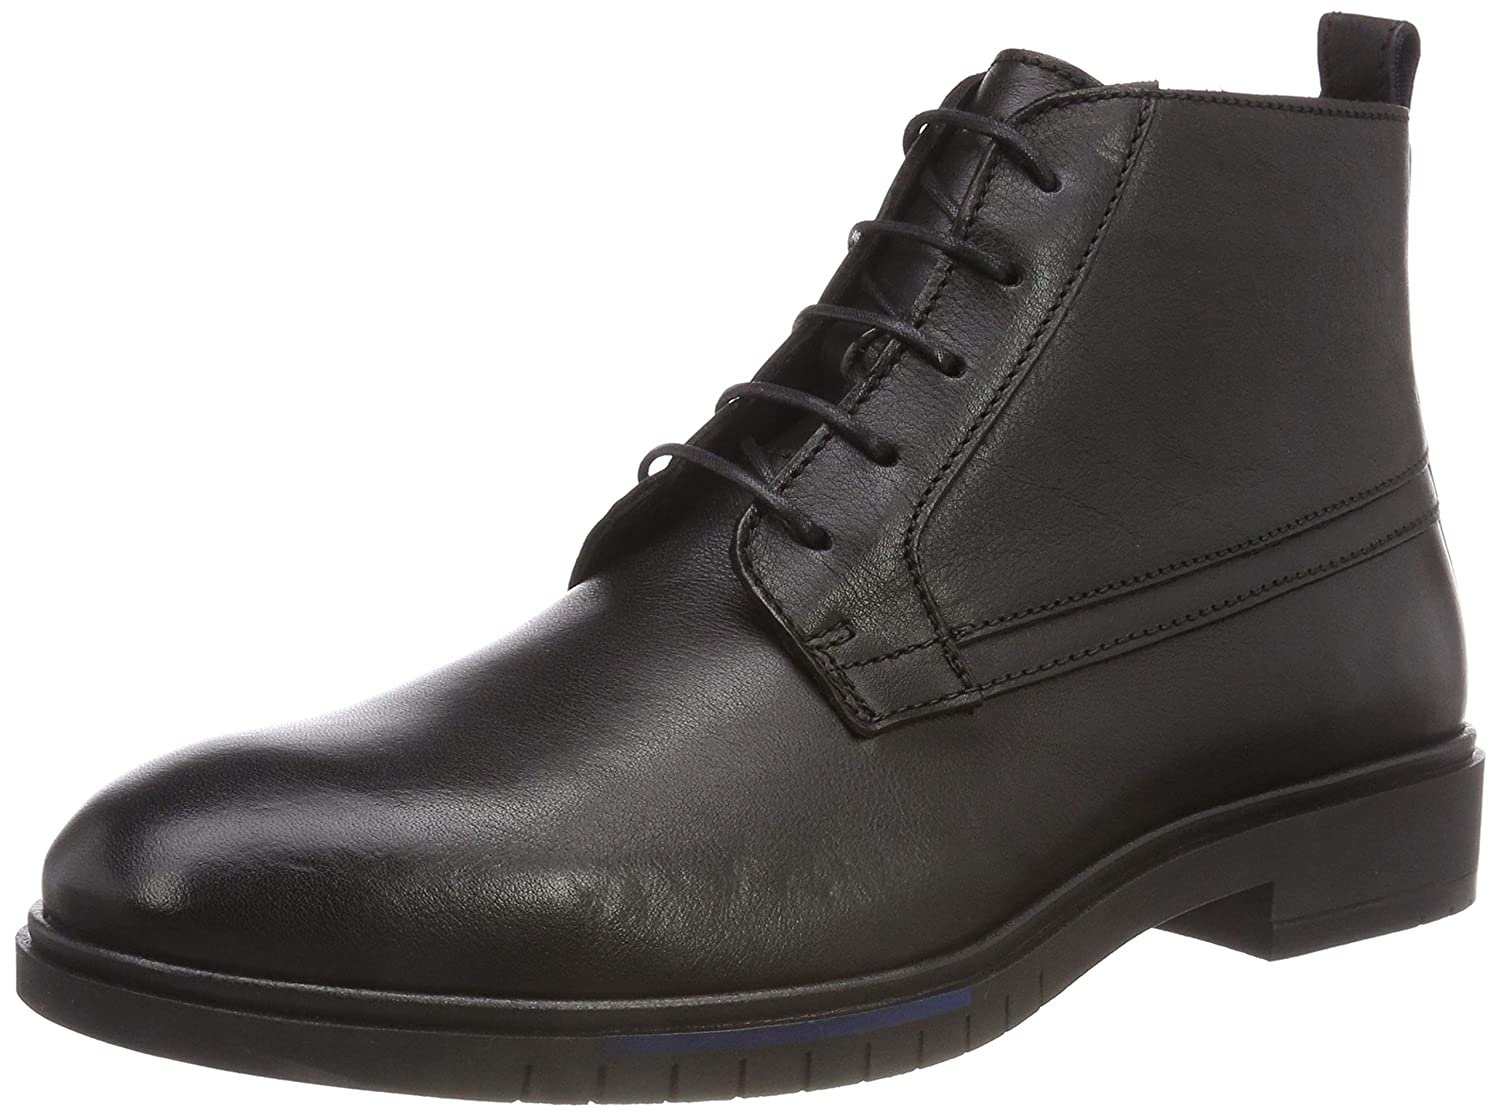 TALLA 42 EU. Tommy Hilfiger Flexible Dressy Leather Boot, Botas Desert para Hombre